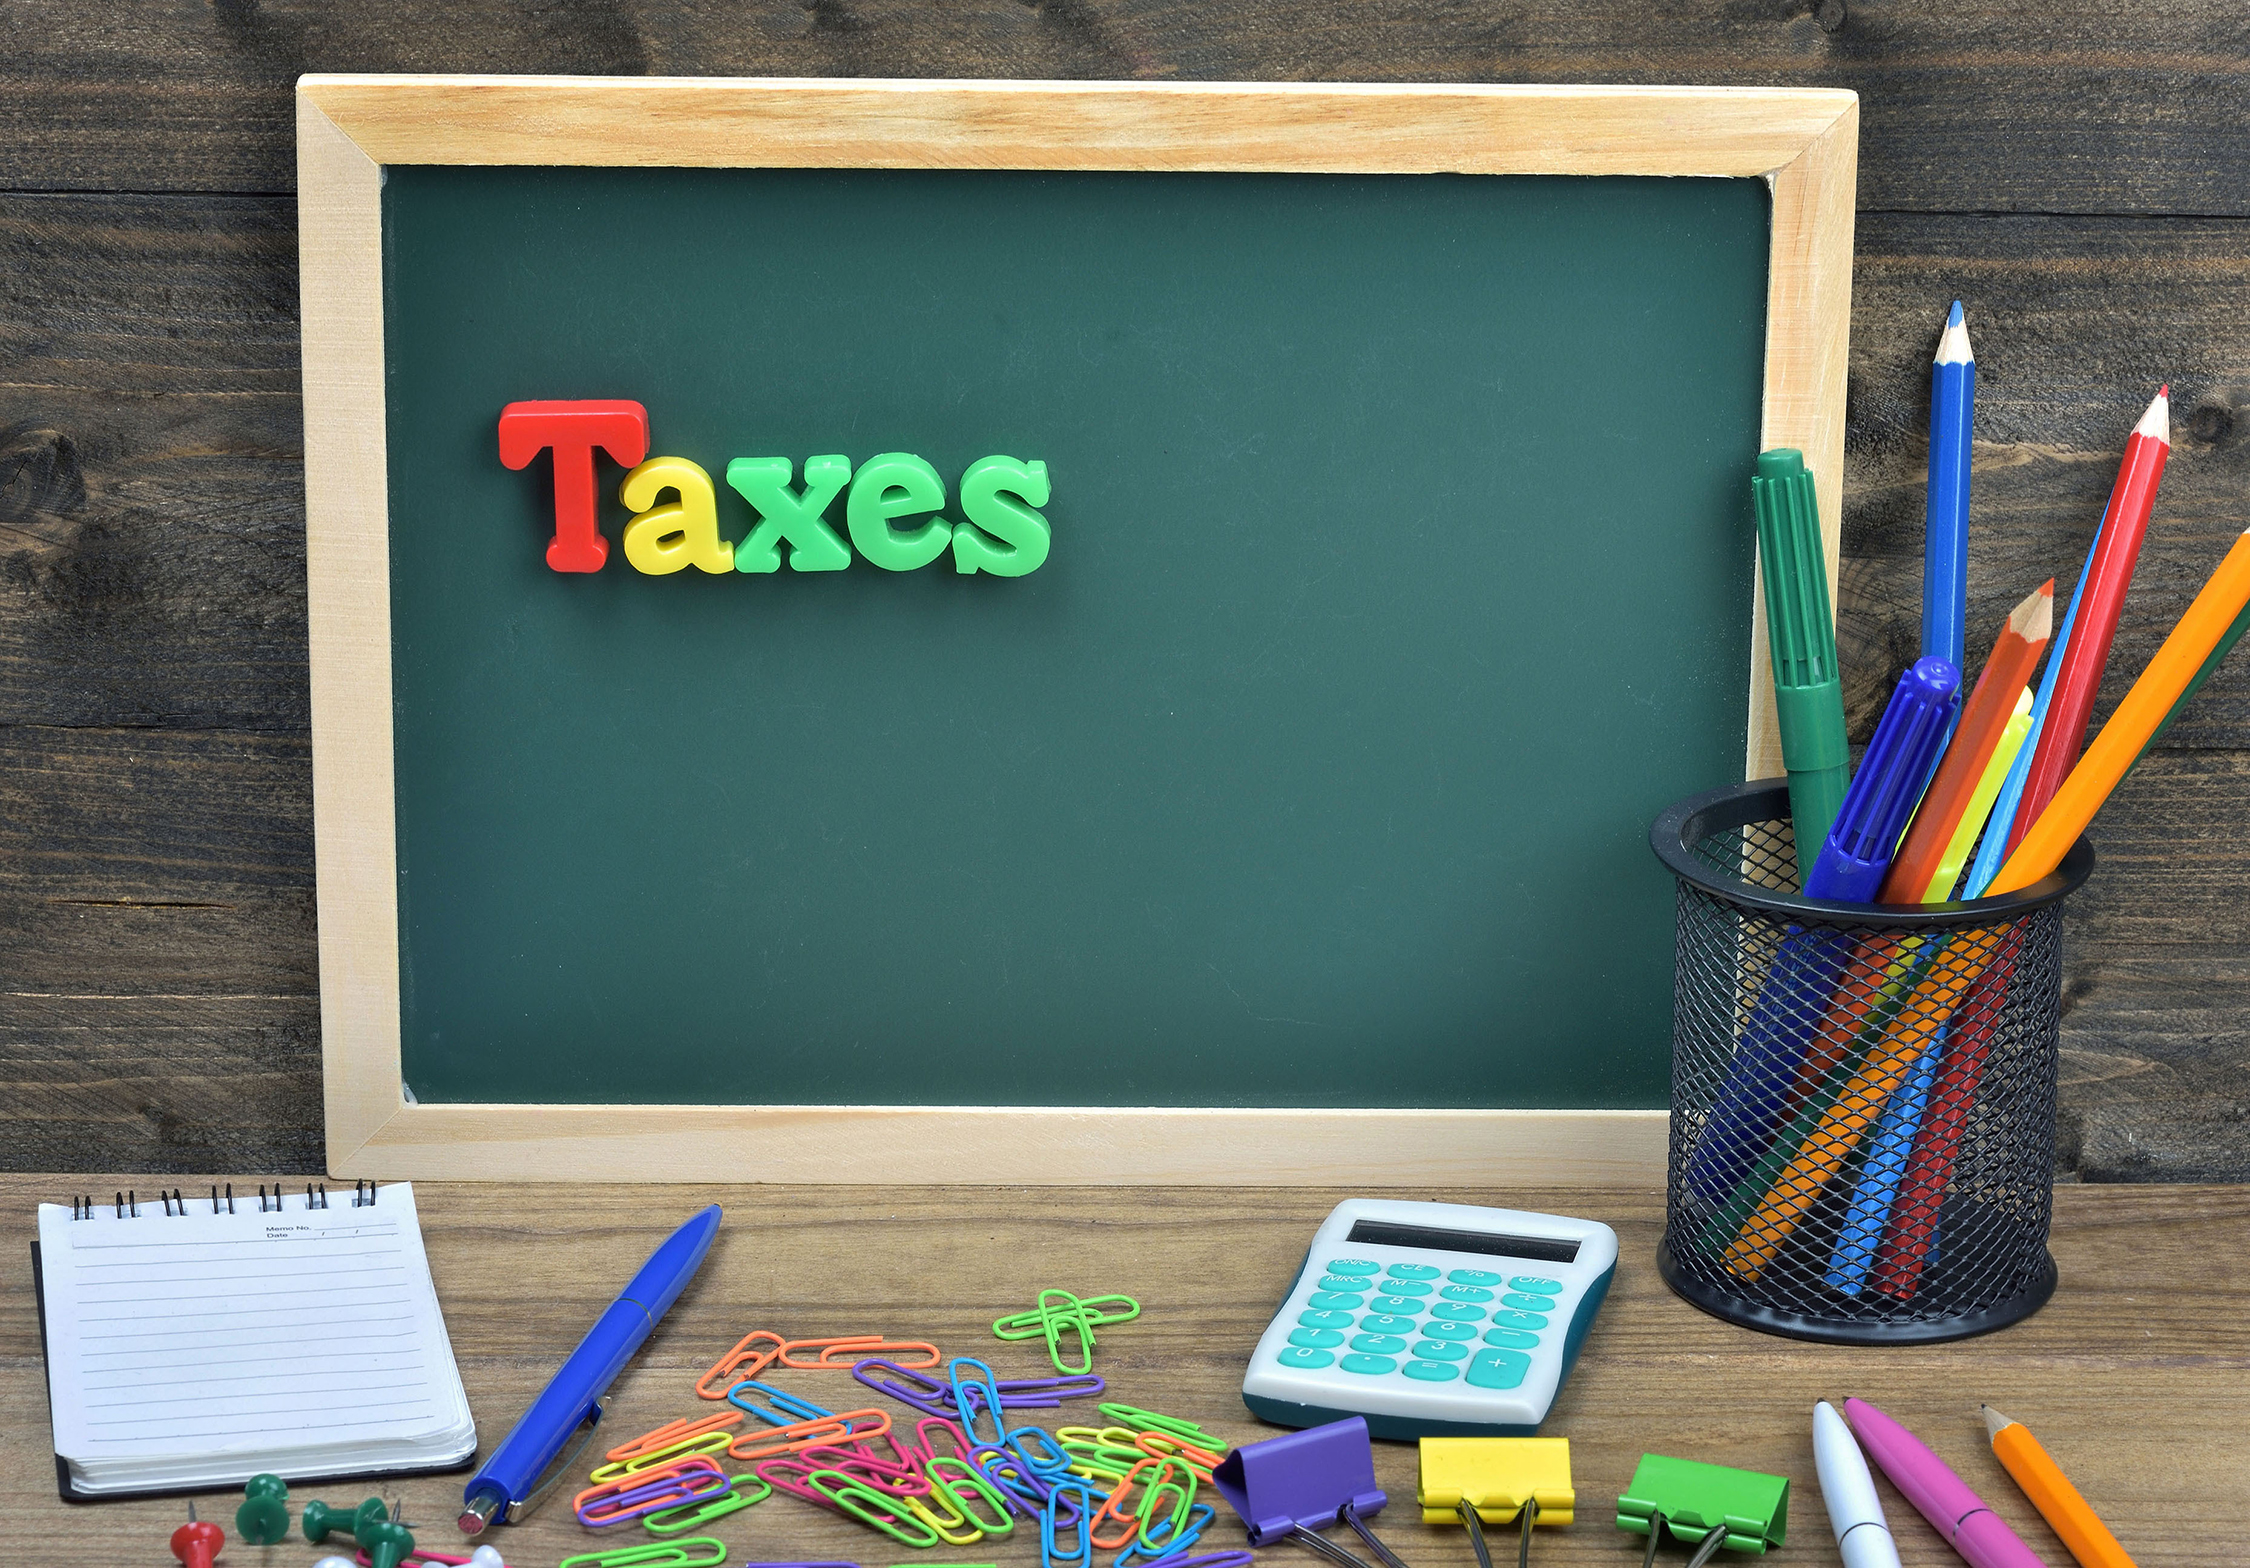 """""""Taxes"""" spelled out in magnets on chalkboard, school setting"""